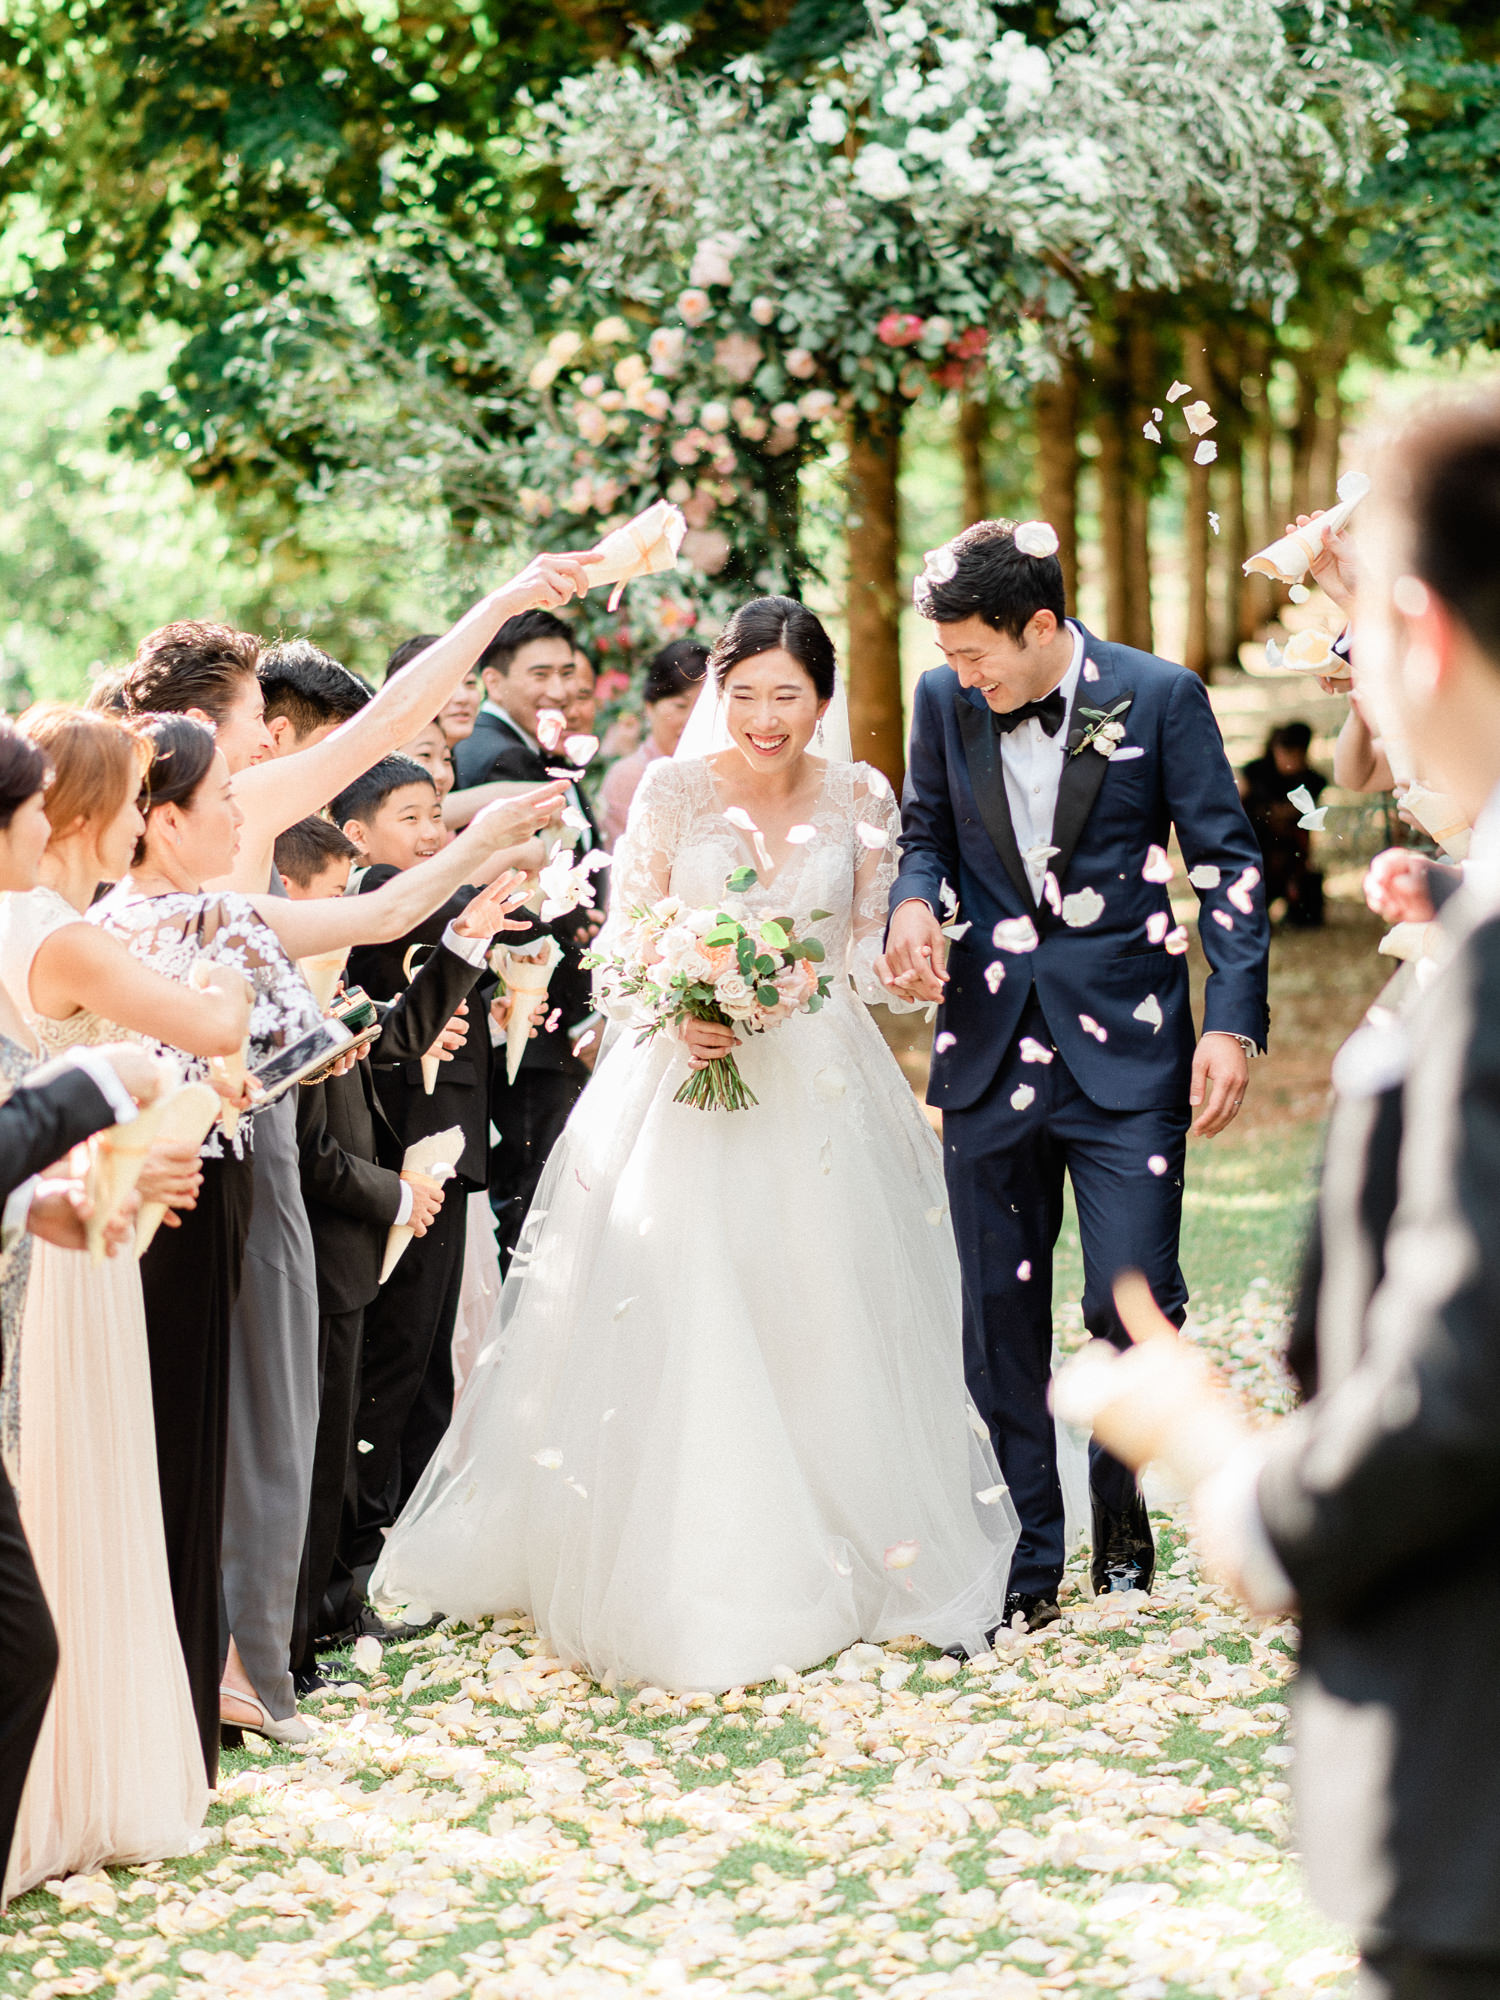 Happy couple leaving Villa Cimbrone ceremony by Gianluca Adovasio Photography